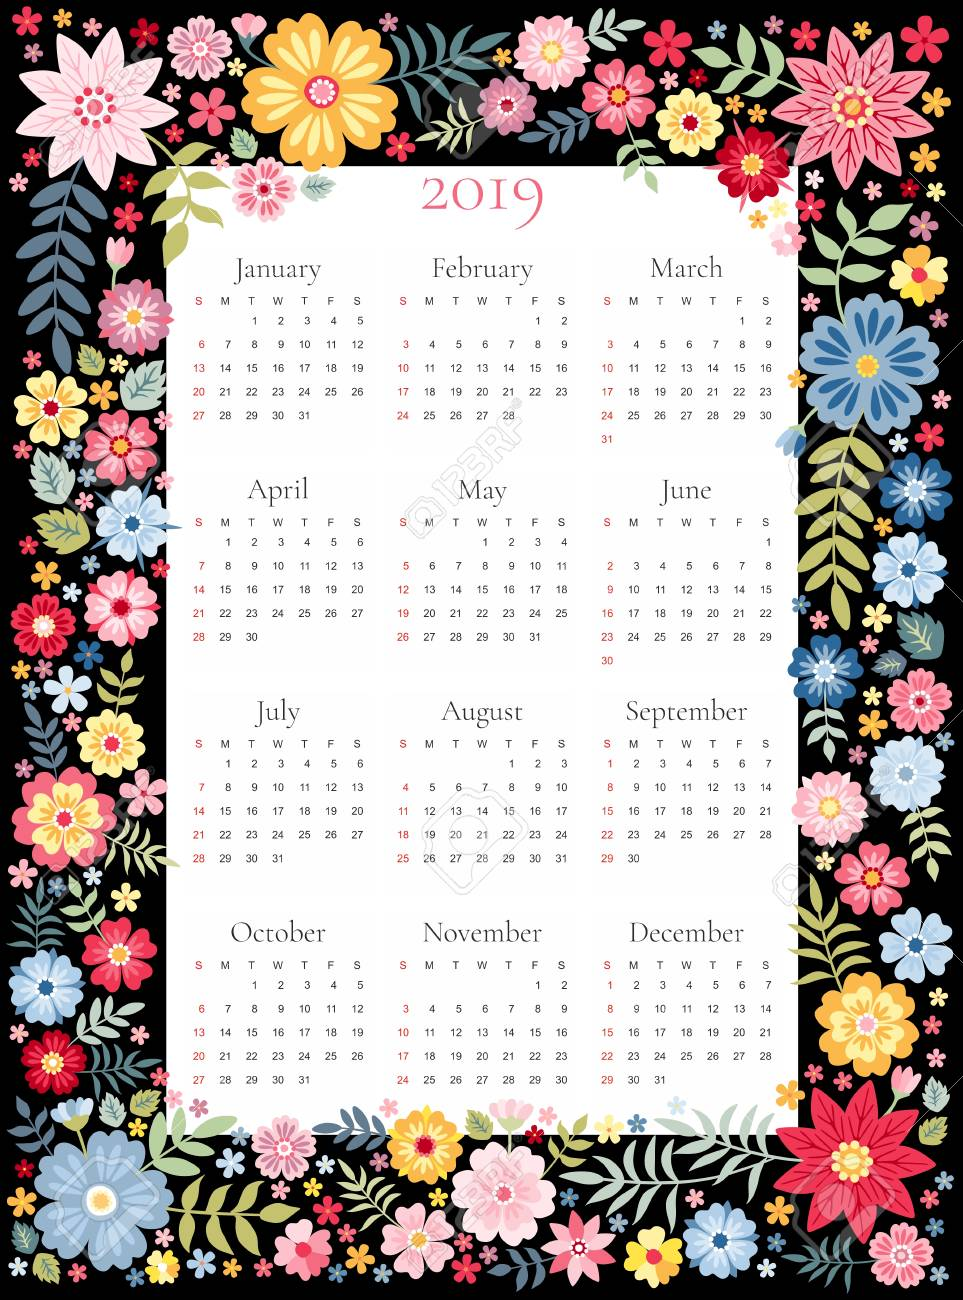 Flower Calendar 2019 Calendar For 2019 Year. Vector Template In Floral Frame With